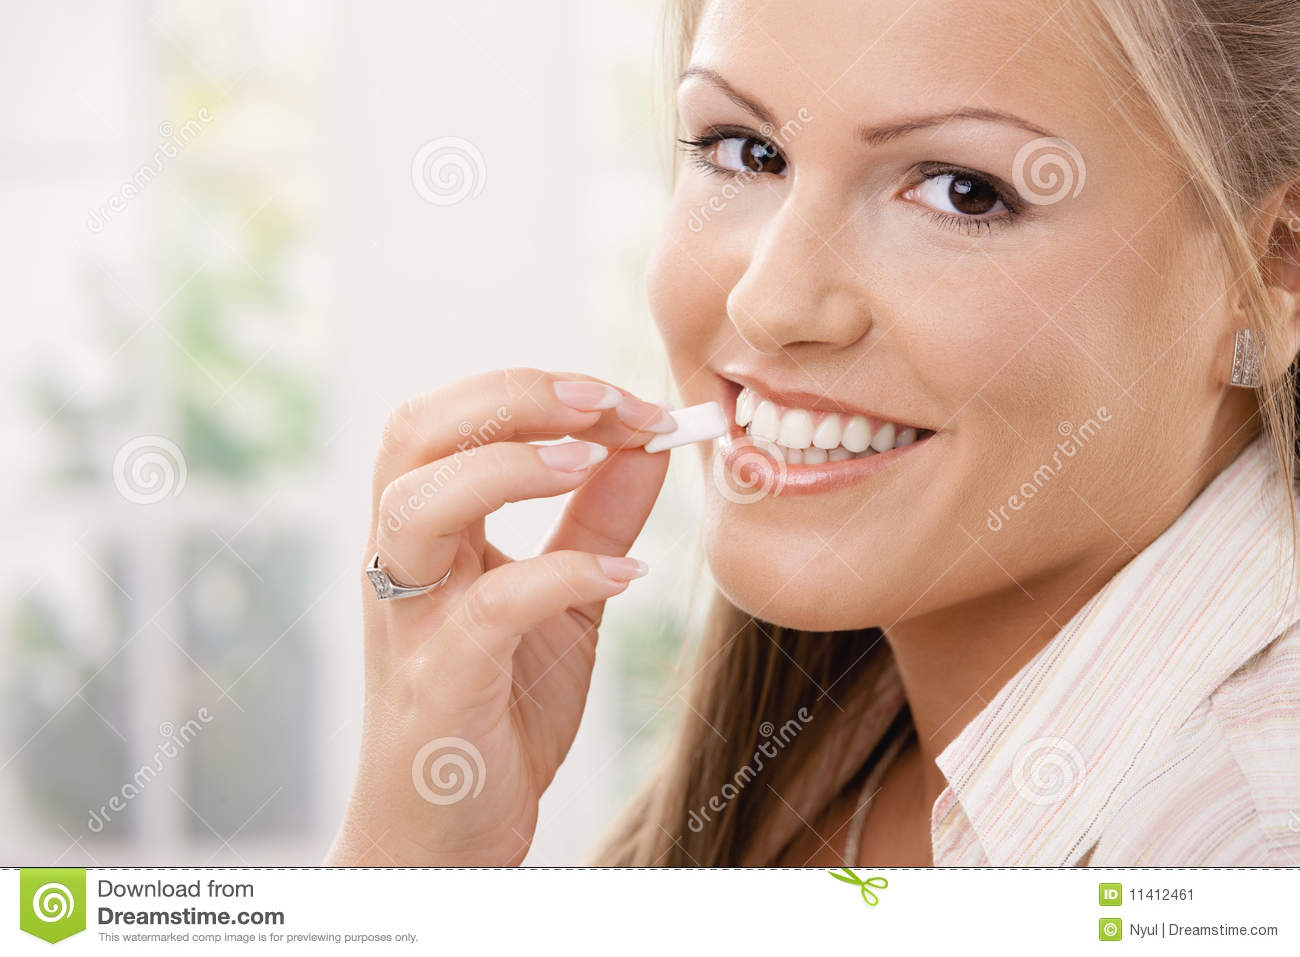 how to eat chewing gum